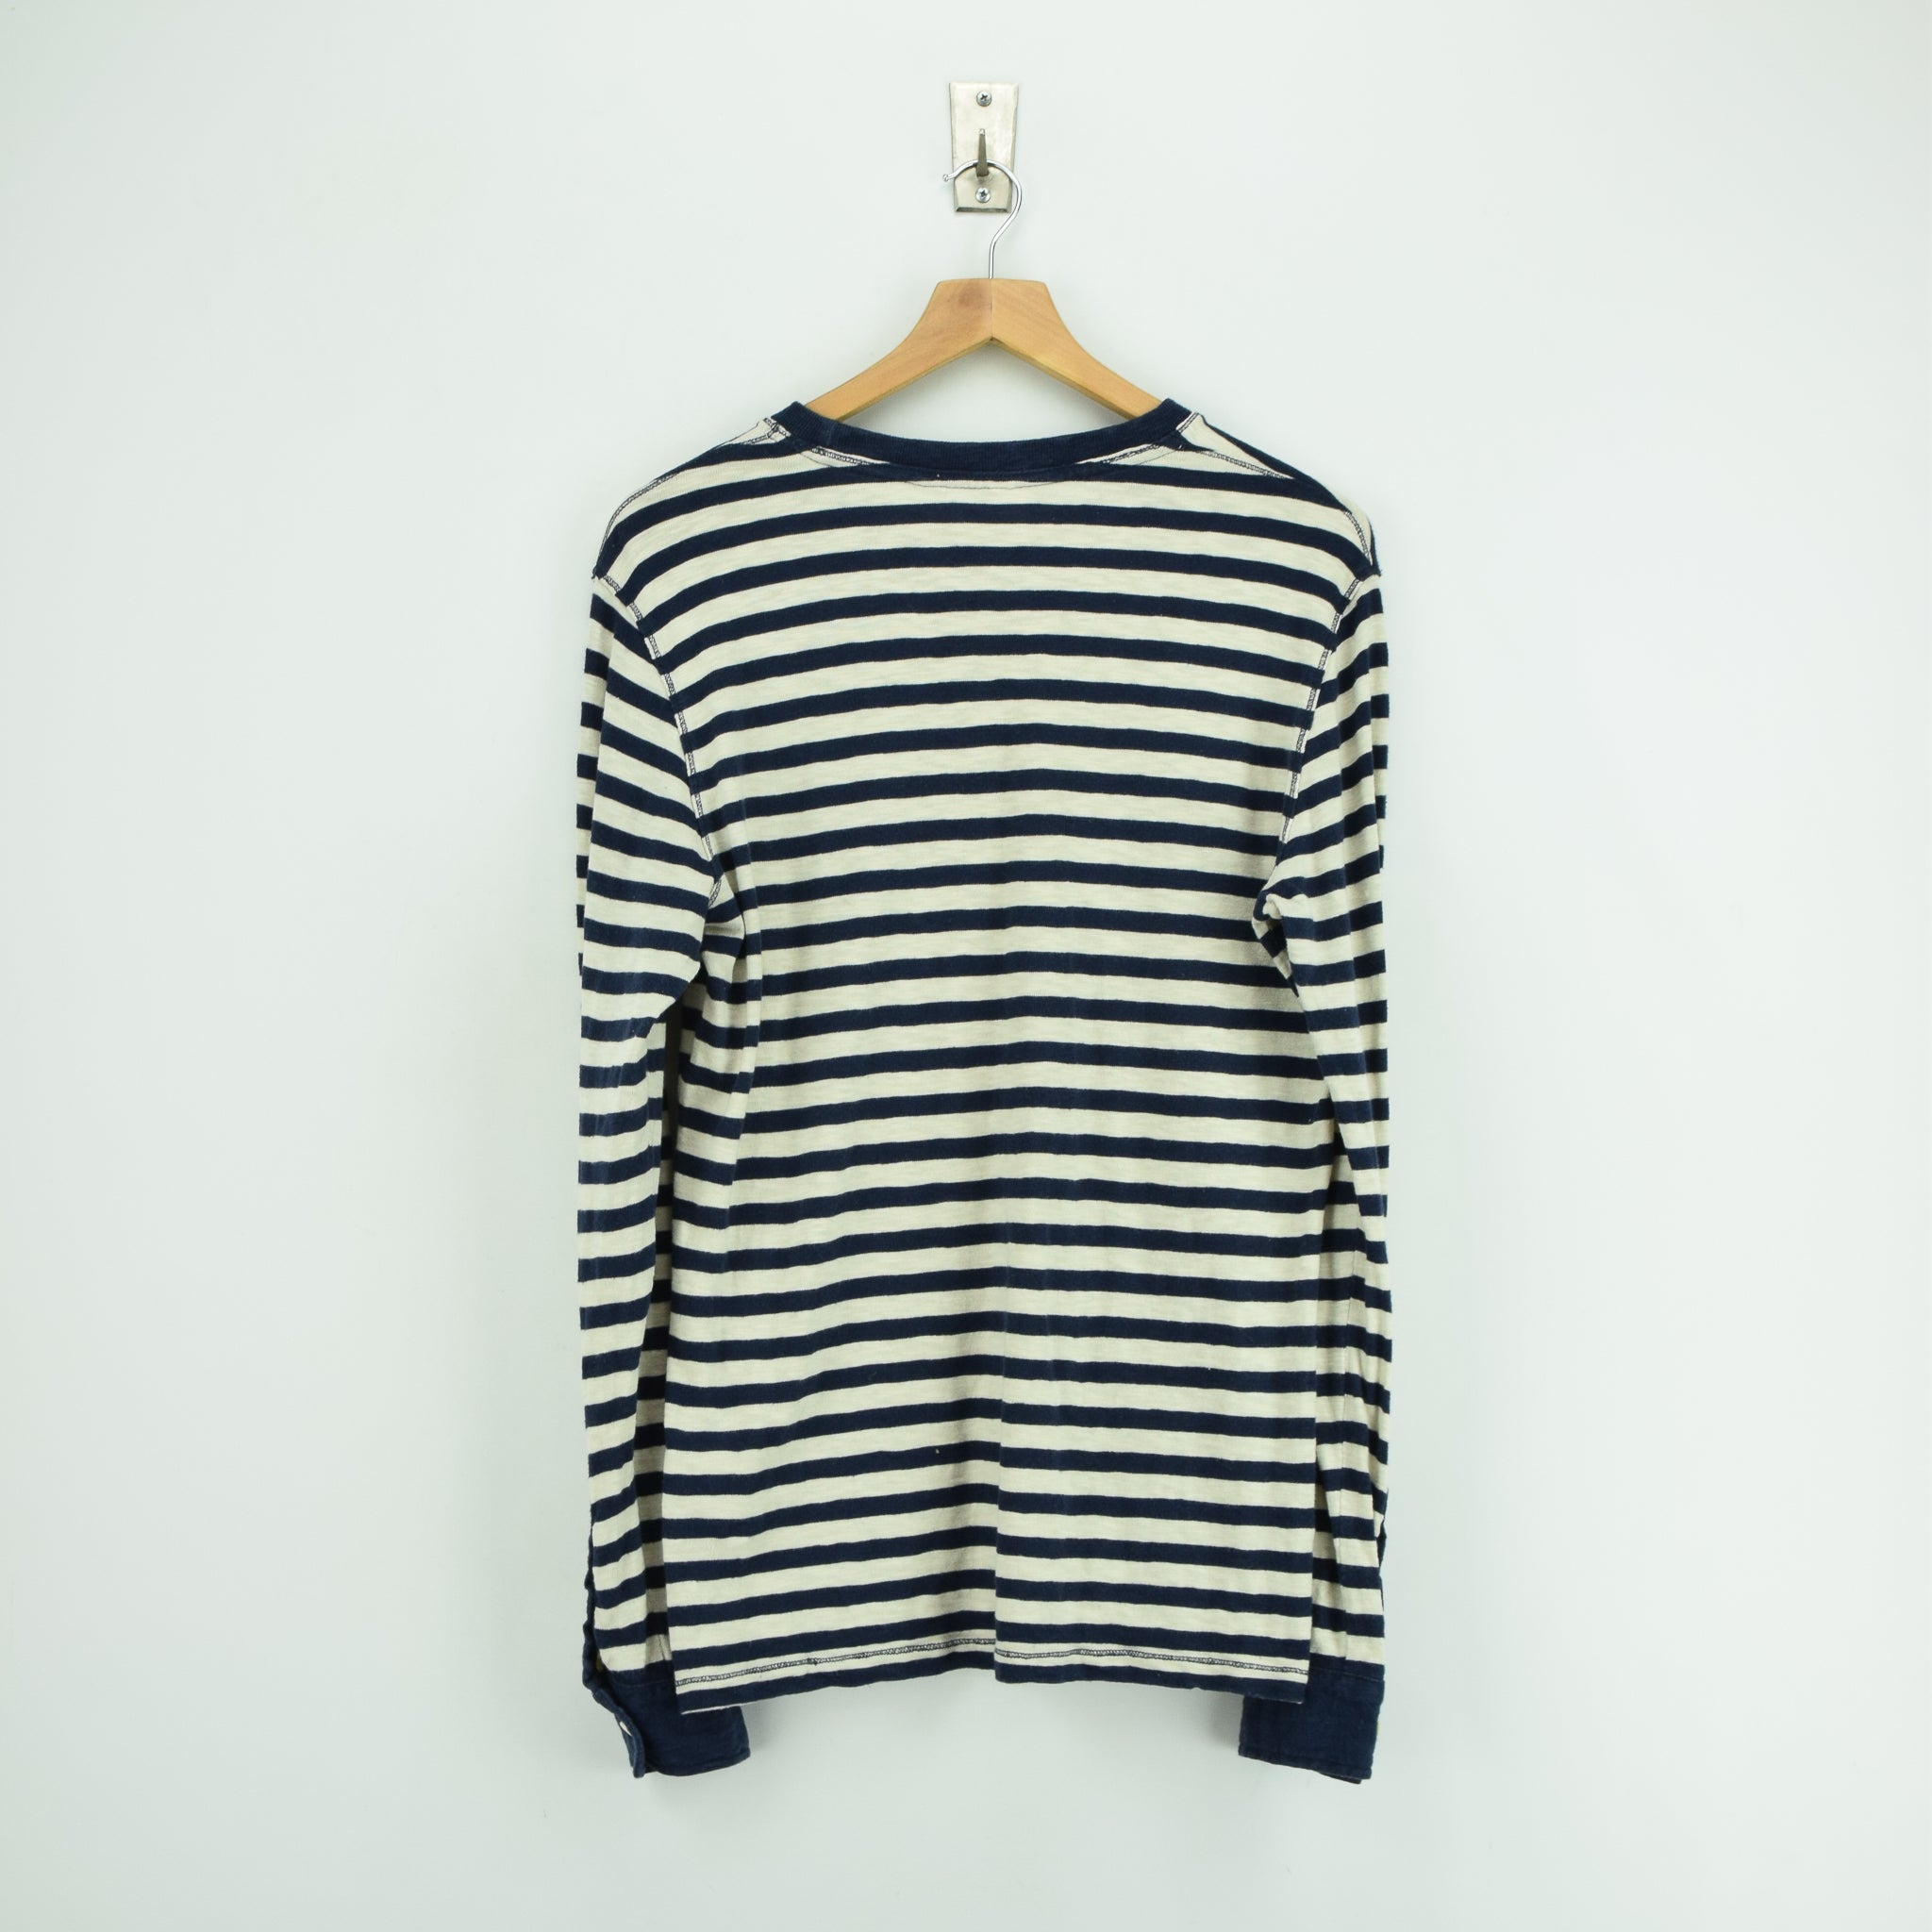 Vintage NN 07 Breton Striped Sailor's Long Sleeved Cotton T-shirt Top S / M back